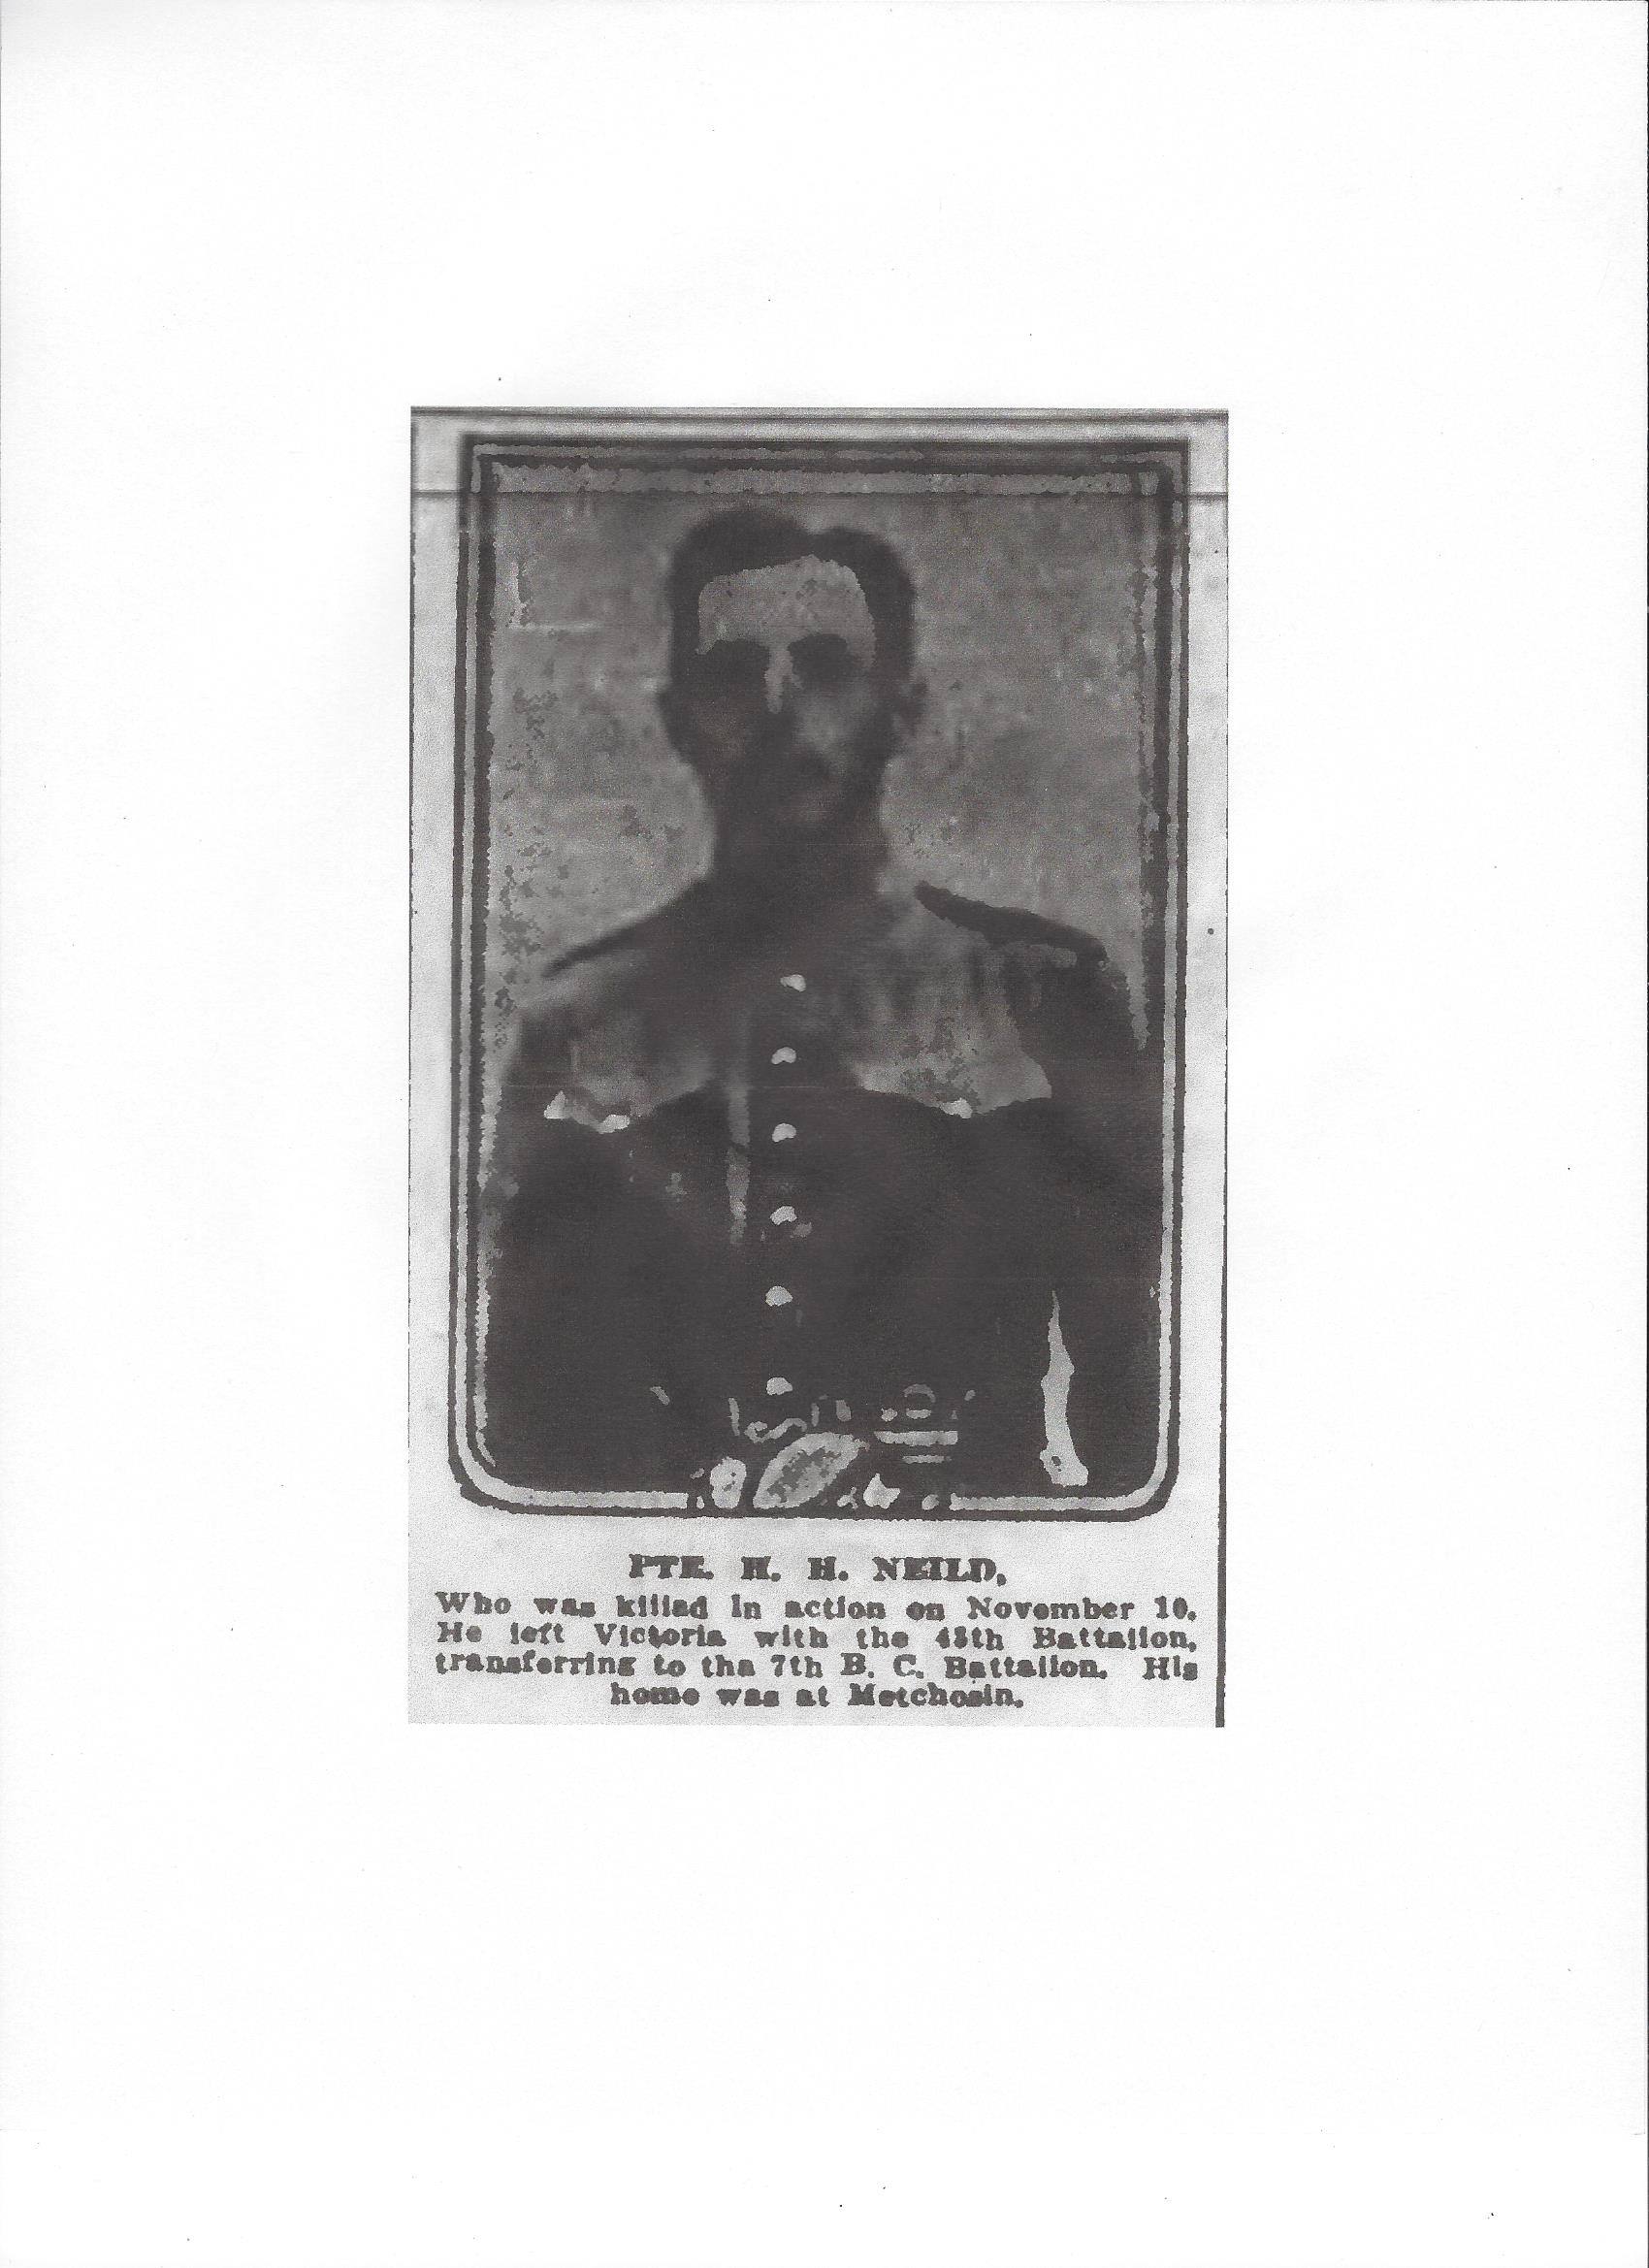 Photo of HENRY NEILD– From the Daily Colonist of December 28, 1917. Image taken from web address of http://archive.org/stream/dailycolonist59by329uvic#page/n0/mode/1up